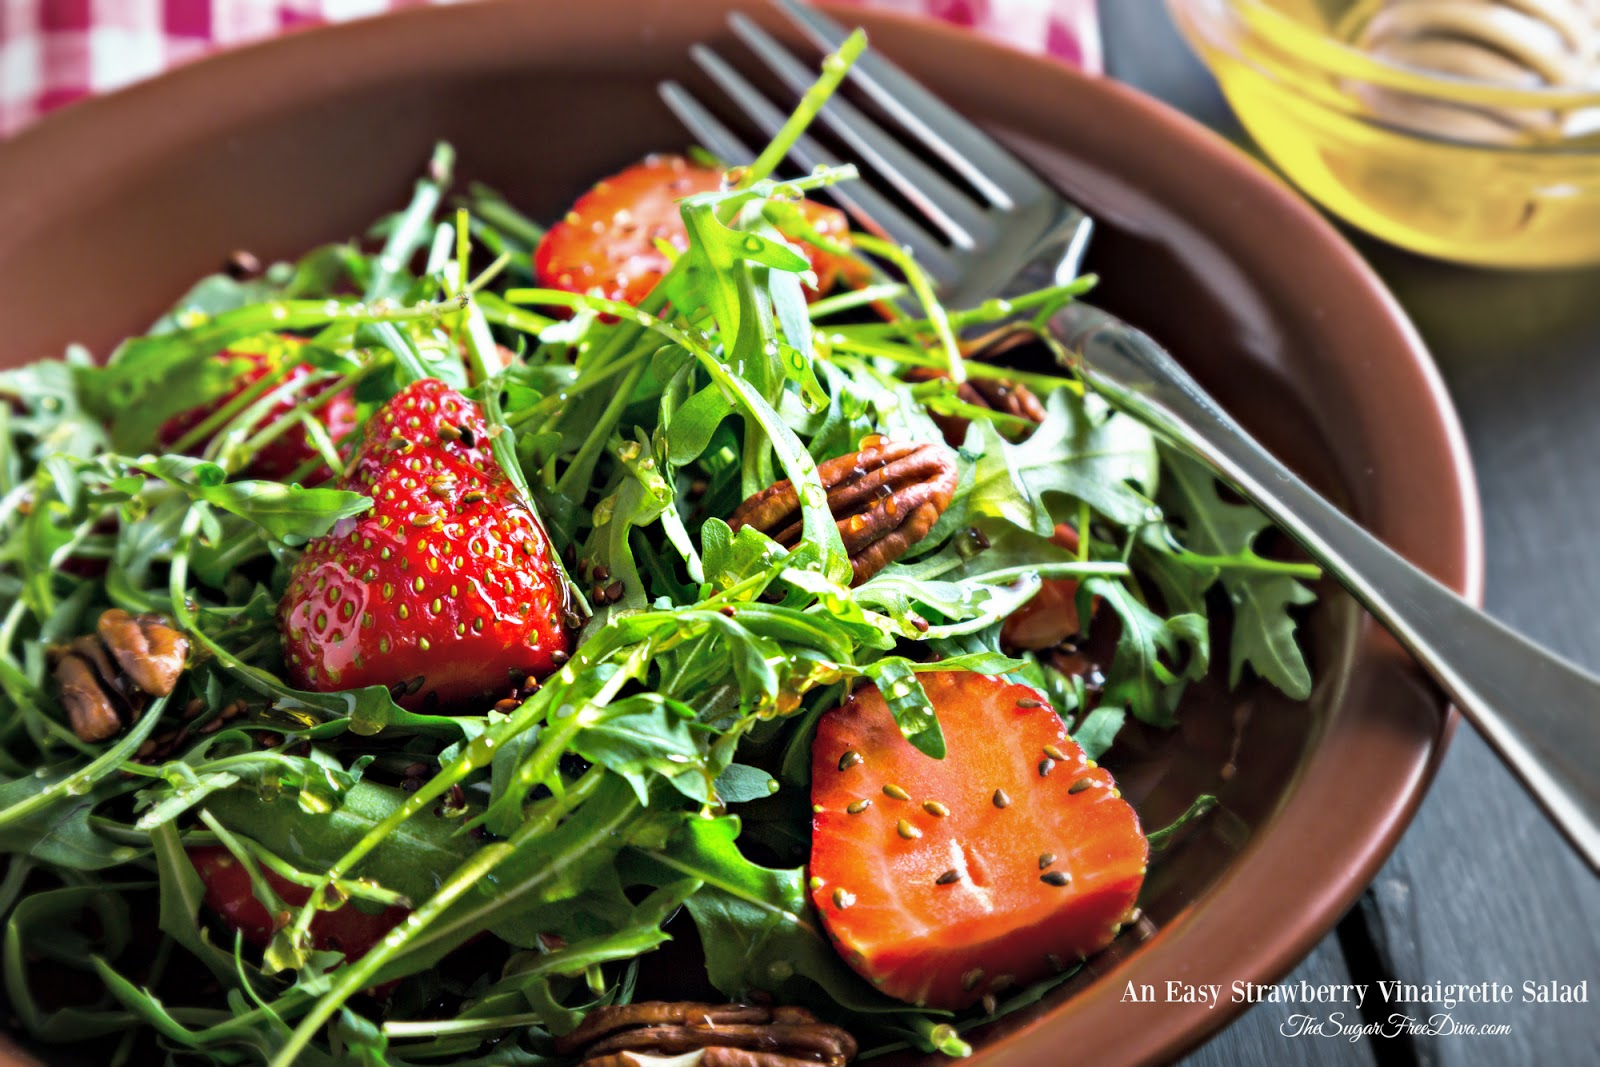 An Easy Strawberry Vinaigrette Salad